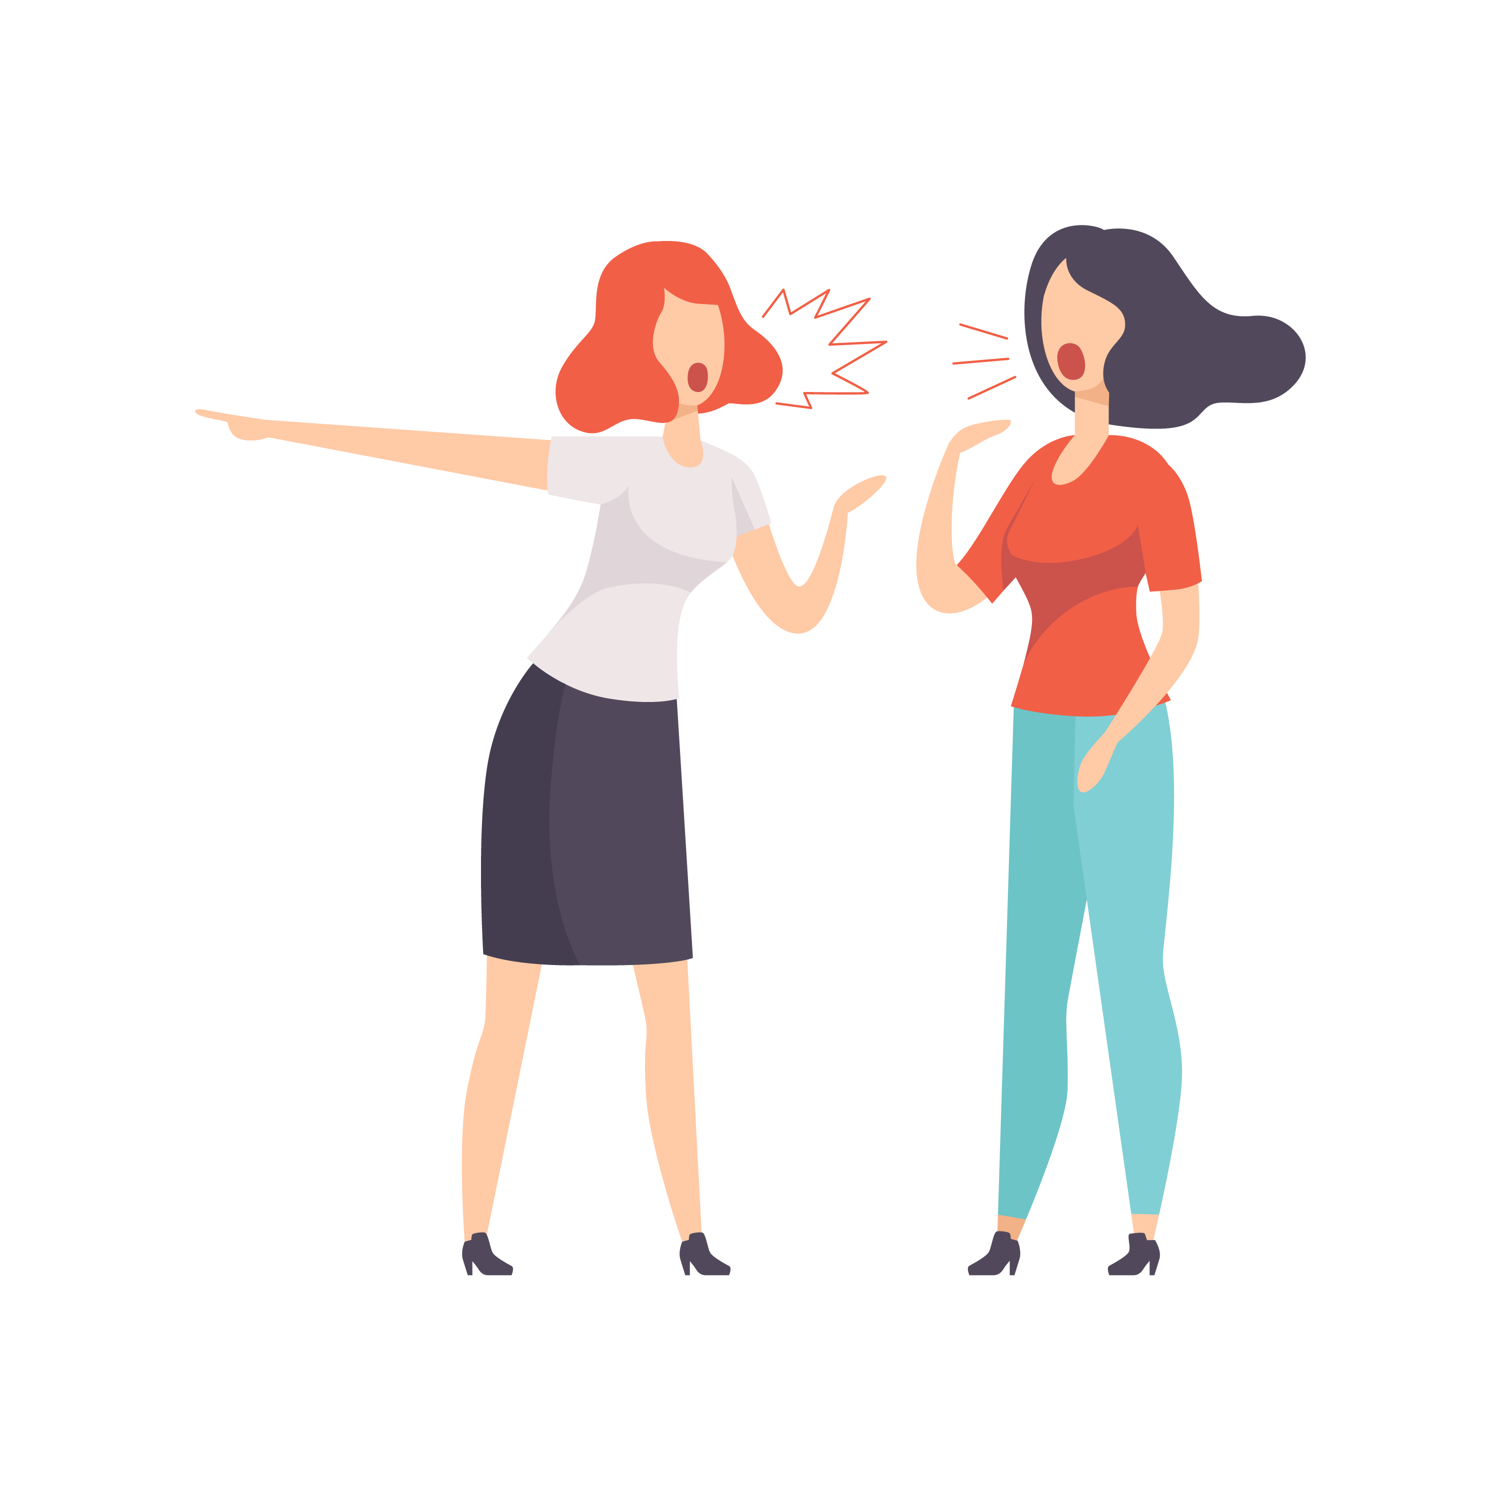 Illustration of two women shouting at each other